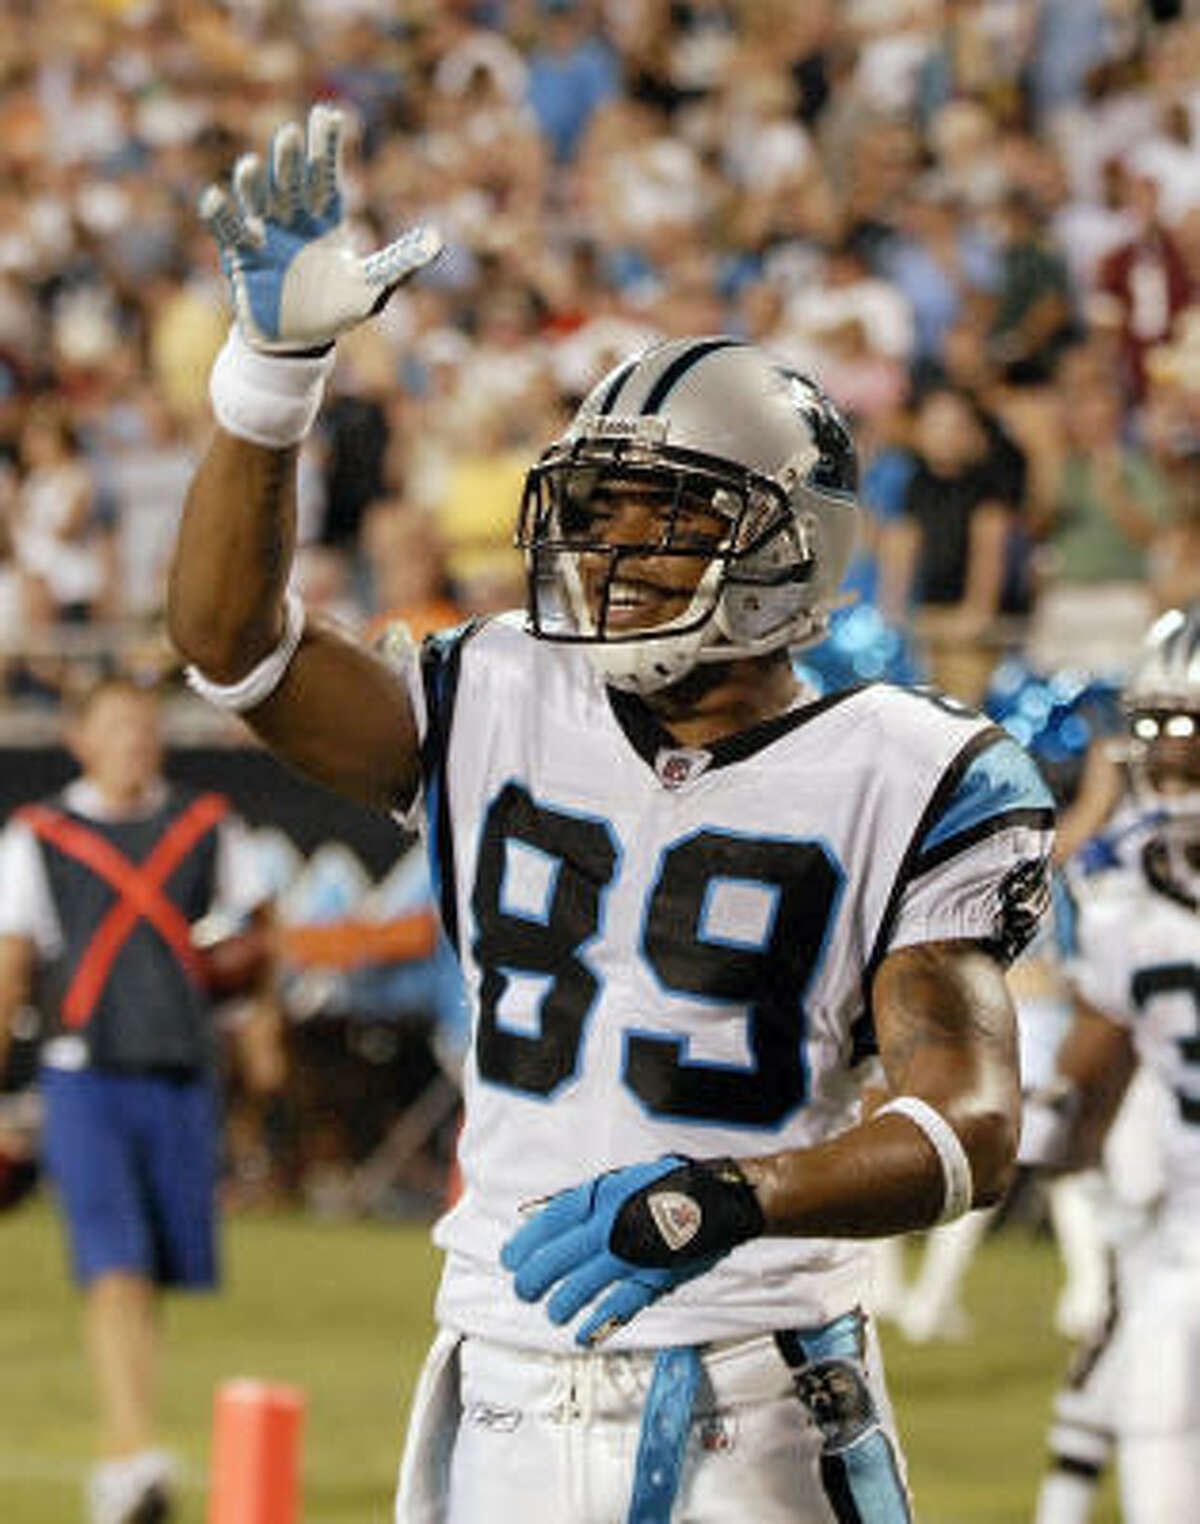 Carolina Panthers Needs: DE, with Julius Peppers' future uncertain and fellow starter Tyler Brayton also a free agent; decision on QB; another WR to complement Steve Smith (top photo). Strengths: RB tandem of DeAngelo Williams and Jonathan Stewart; LB and CB with Jon Beason, Thomas Davis, Chris Gamble and Richard Marshall.